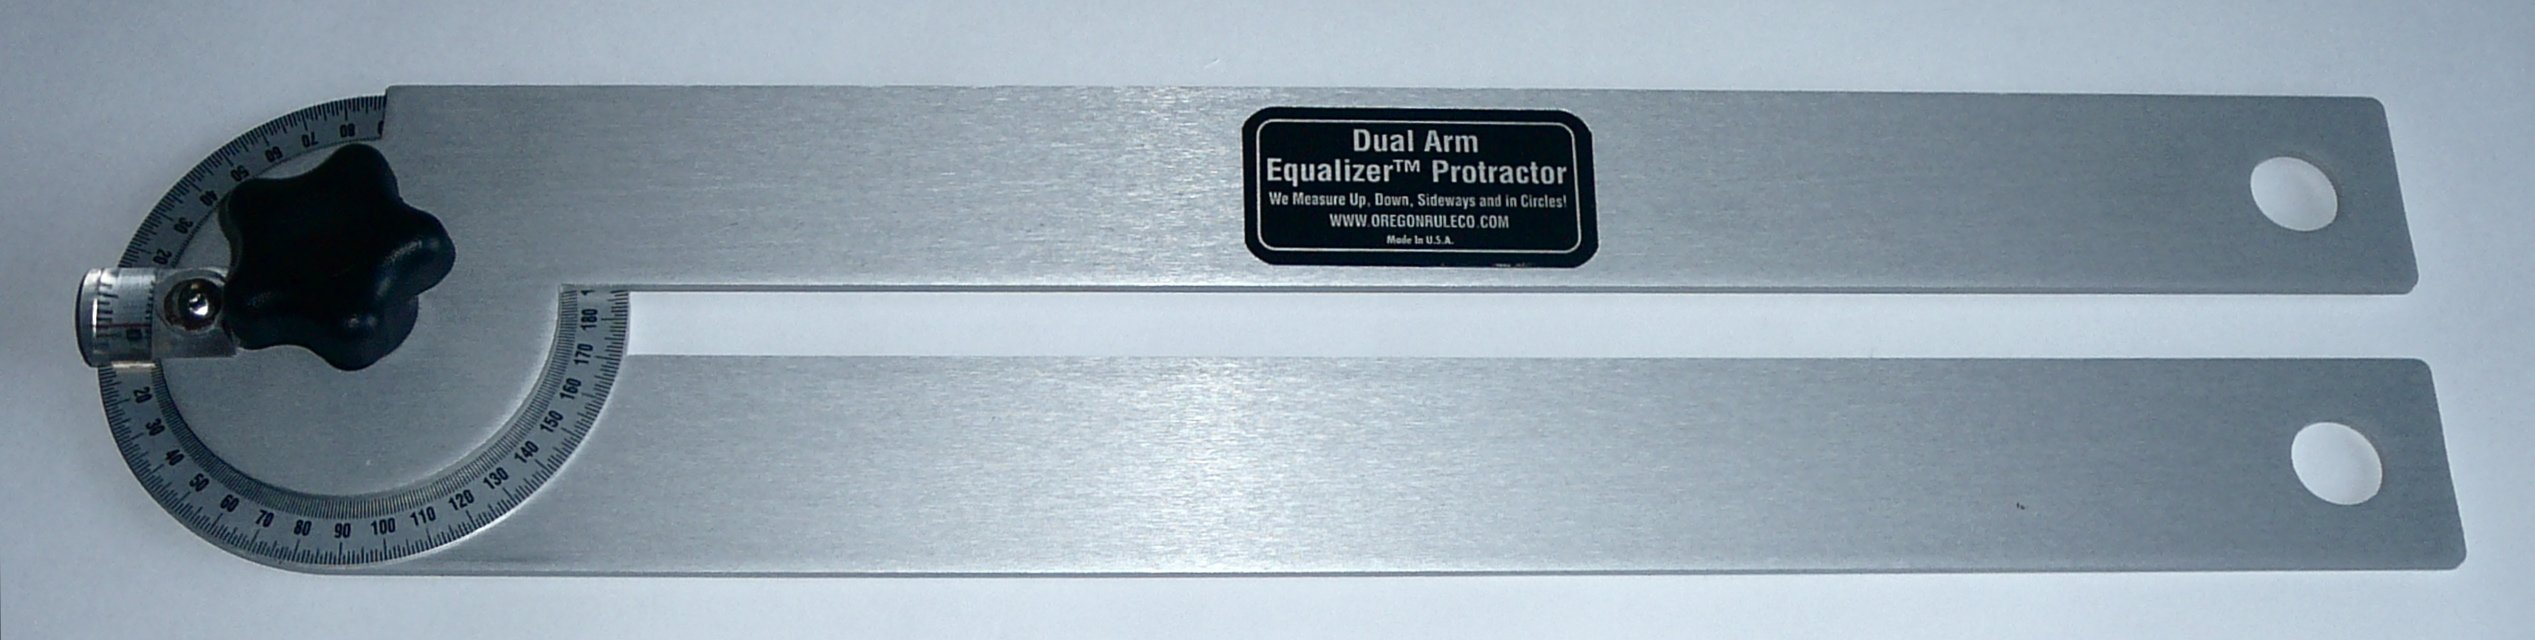 Dual Arm Equalizer Protractor – 18 Inch Anodized Aluminum Arms